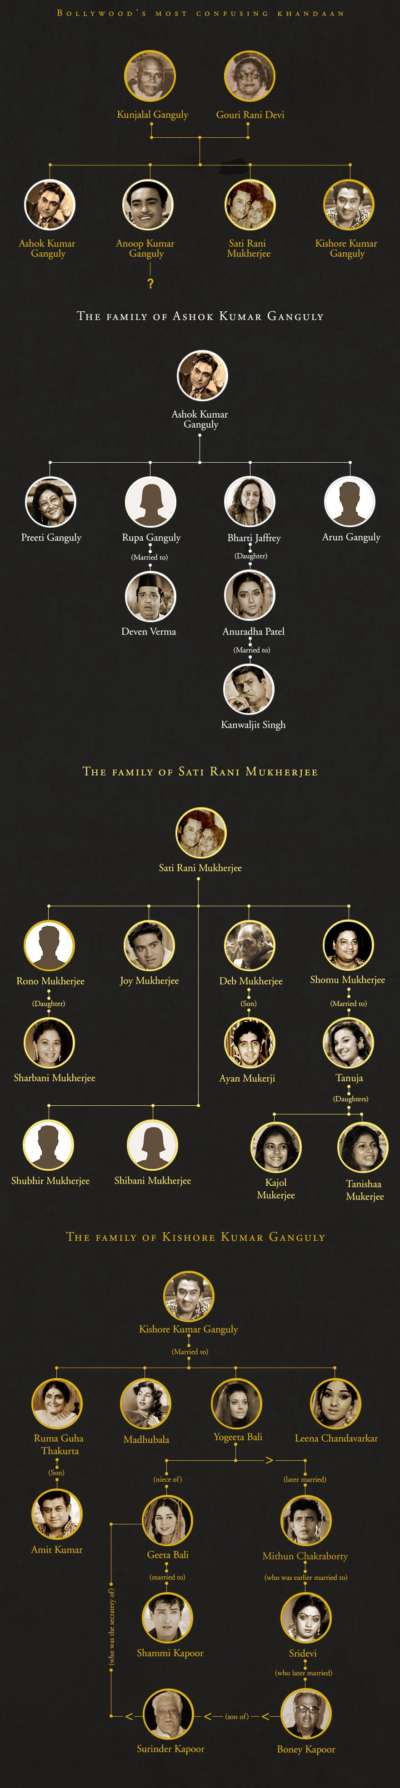 Meet the Most Confusing Family of Bollywood Other Than The Kapoor's